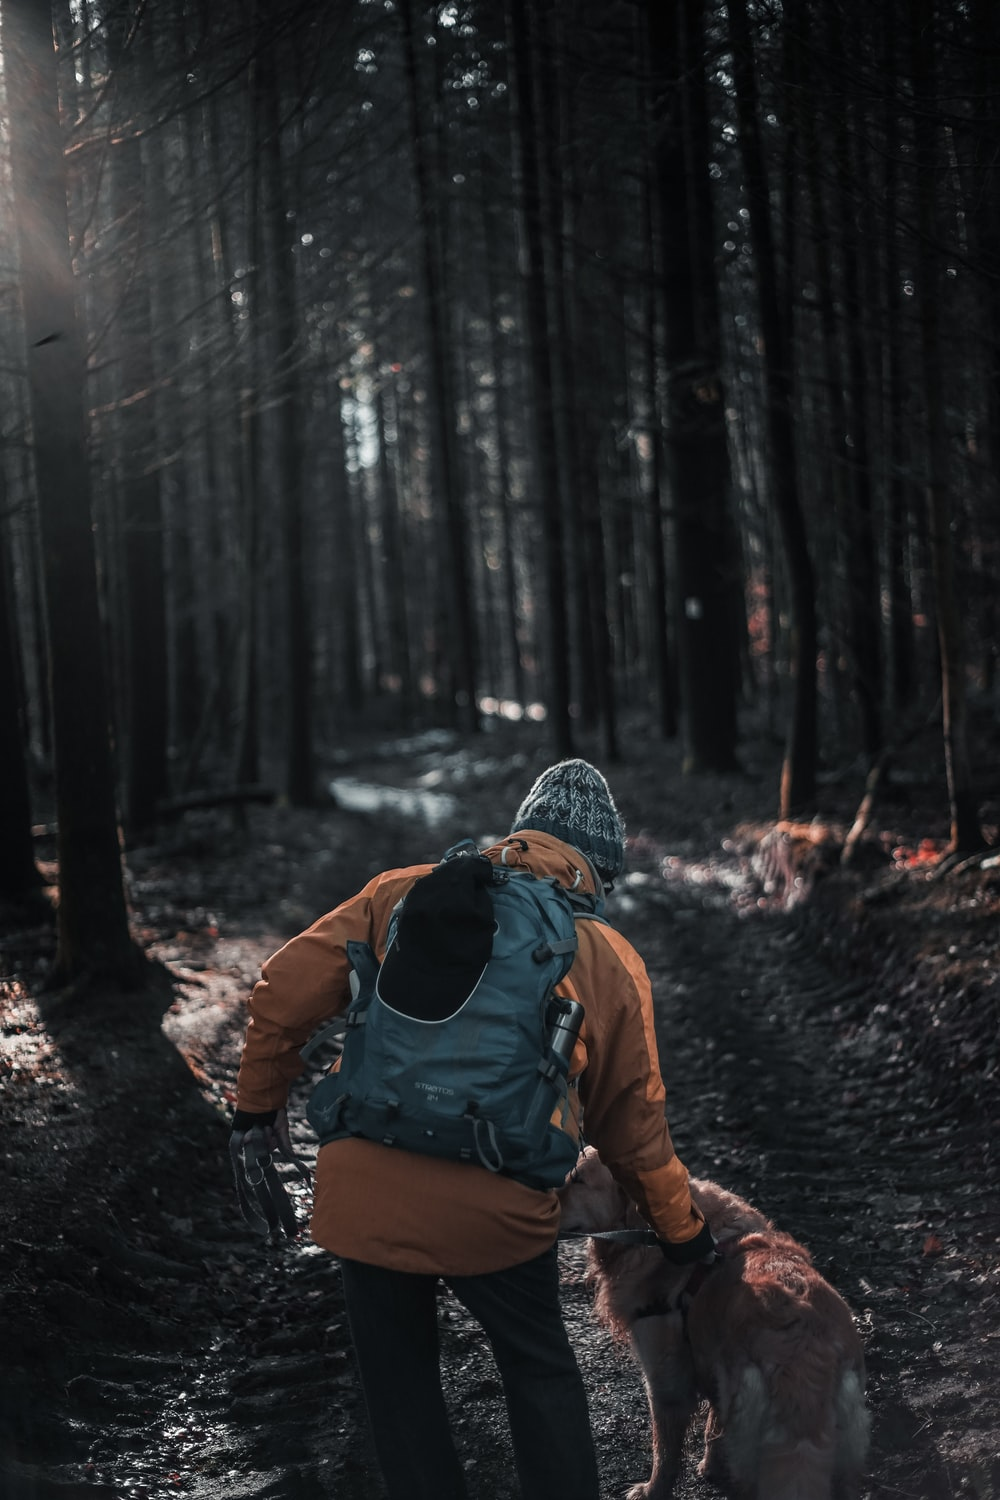 man with hydration pack walking in forest together with dog